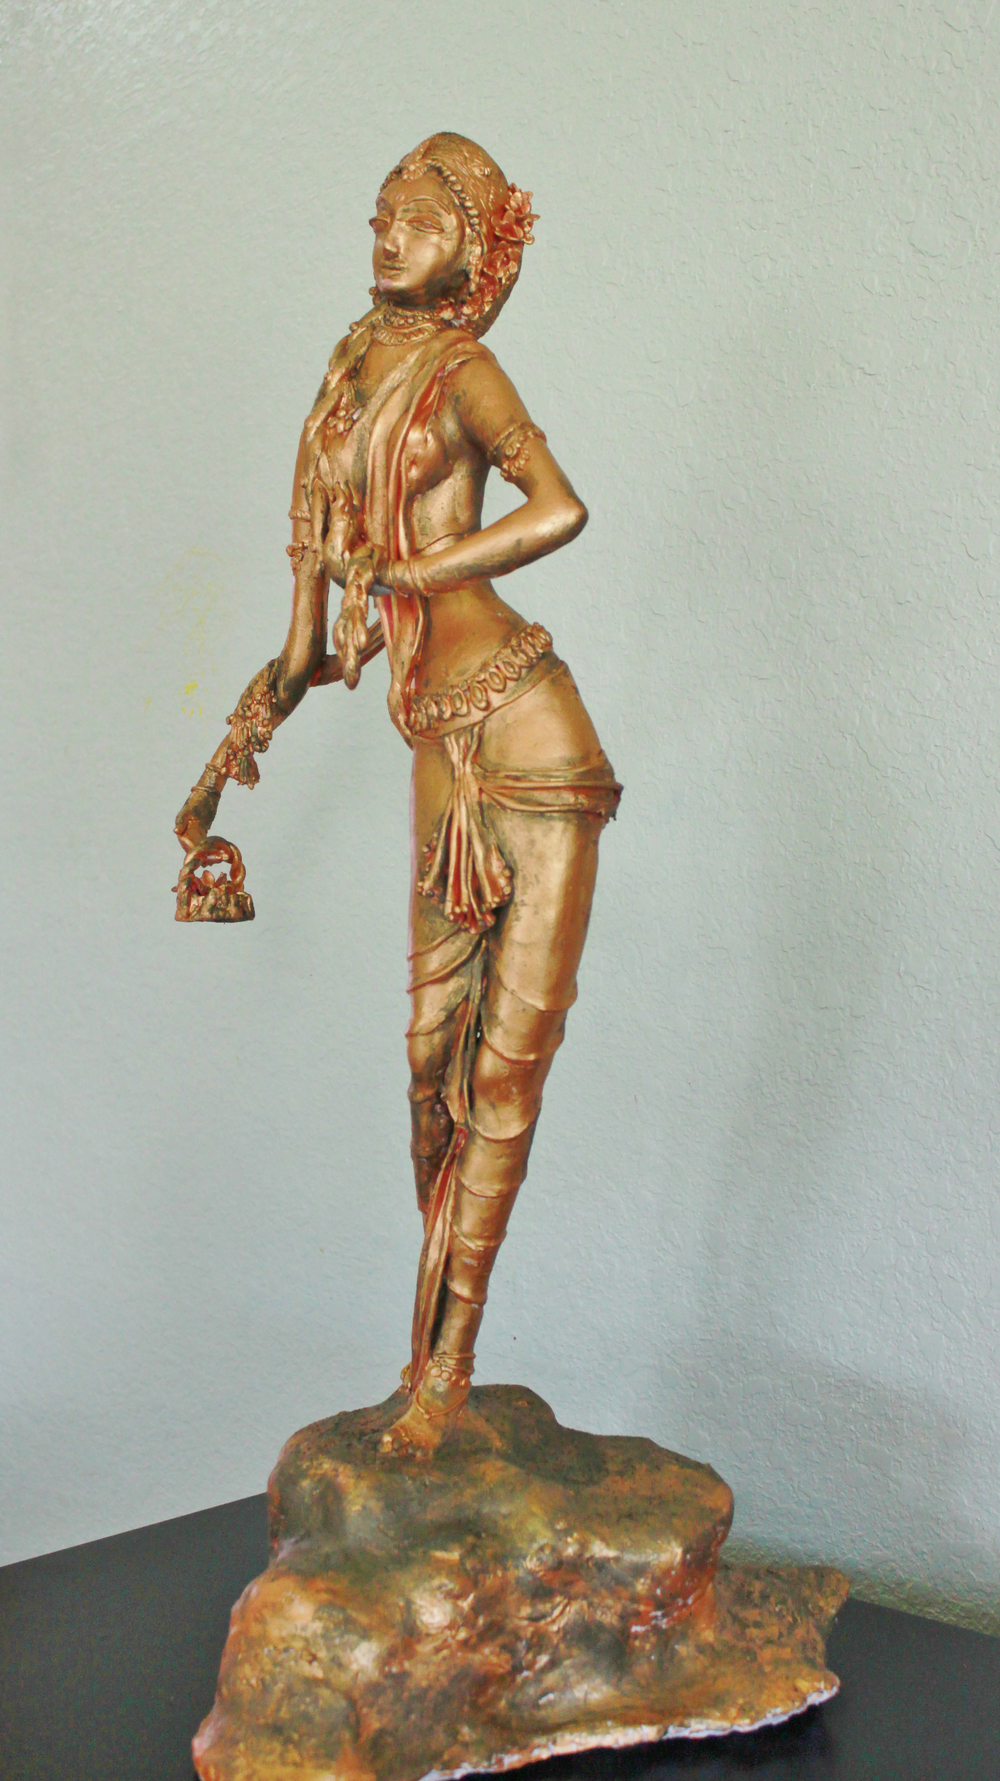 Parvathi - A bronzed version